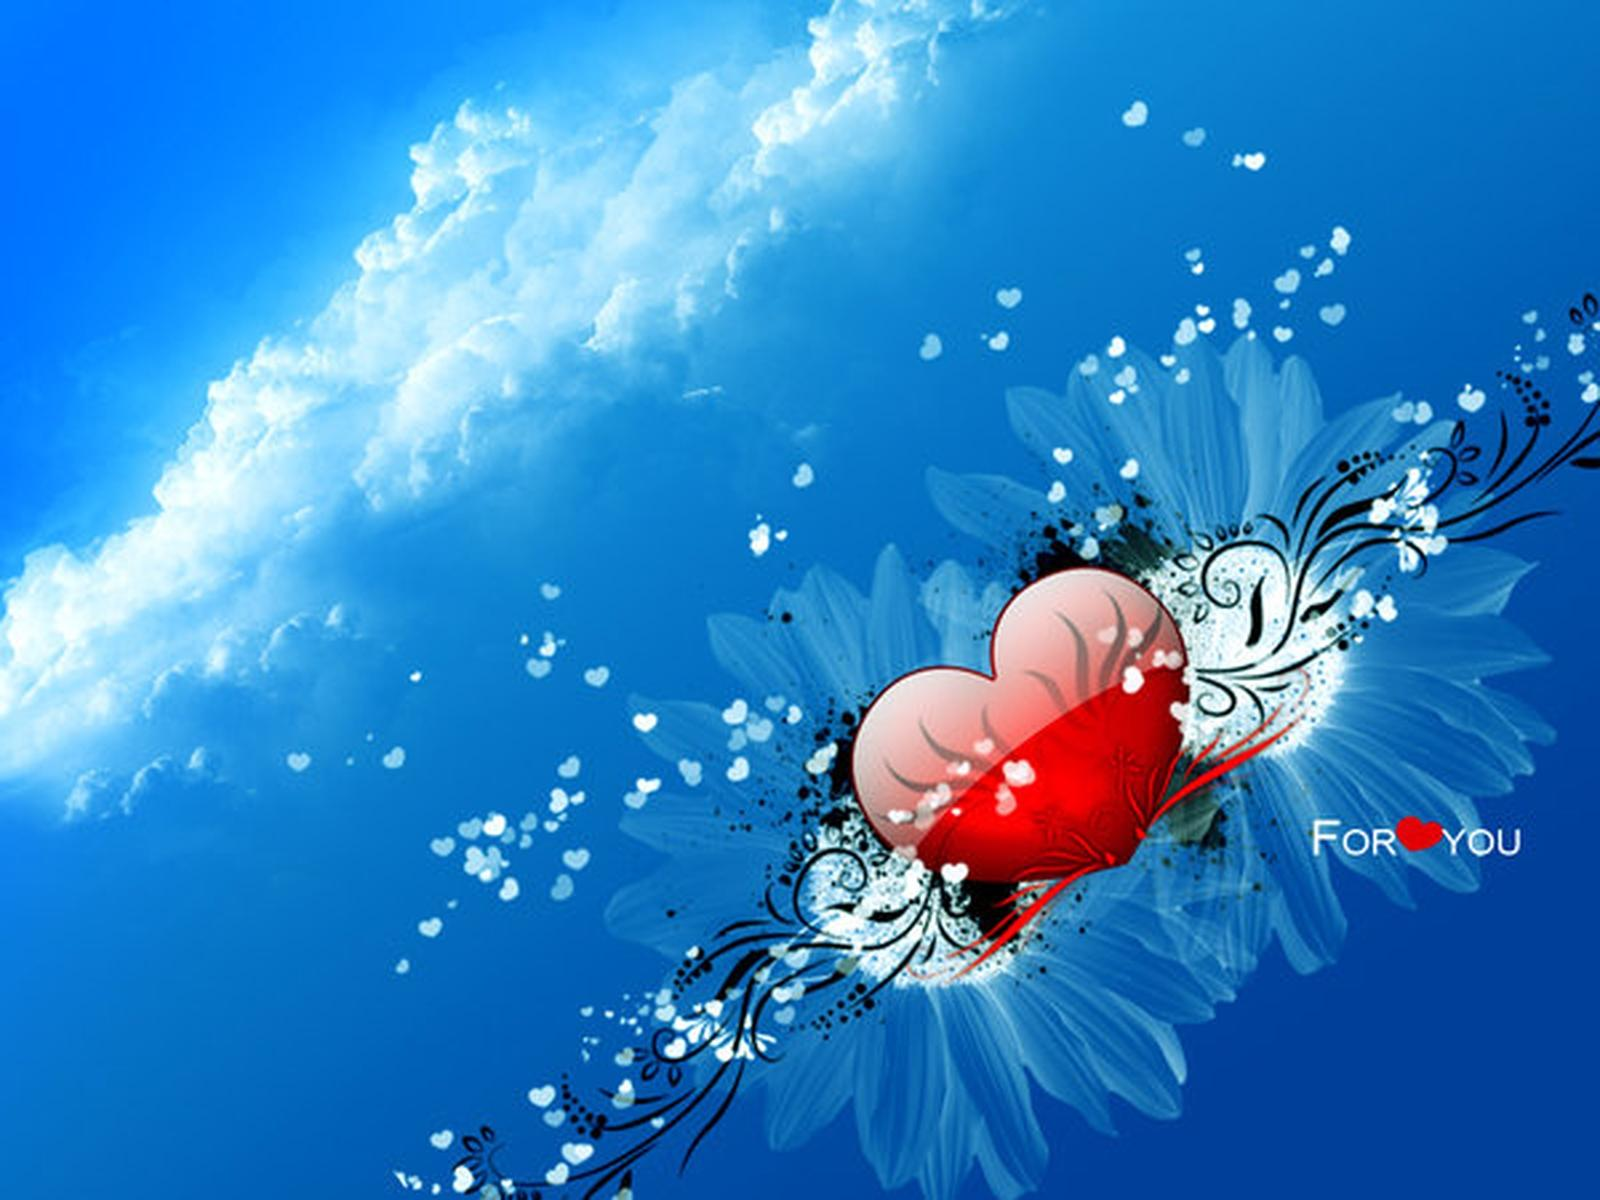 New Sad Love Hd Wallpaper : Desktop Wallpapers,Animals Wallpapers,Flowers Wallpapers, Birds Wallpapers ,Sad Poetry ...